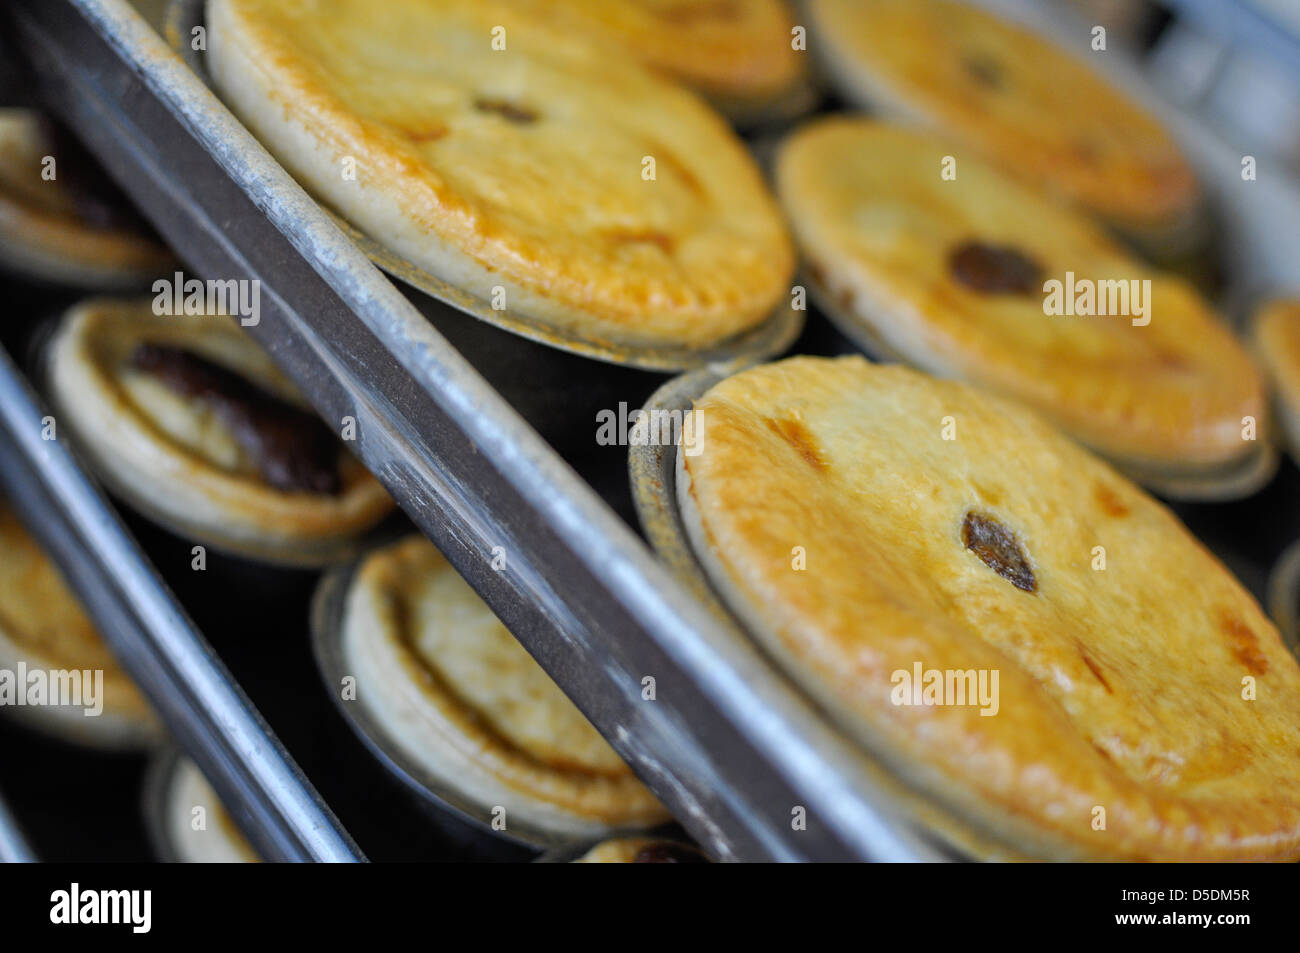 Lots of pies. - Stock Image